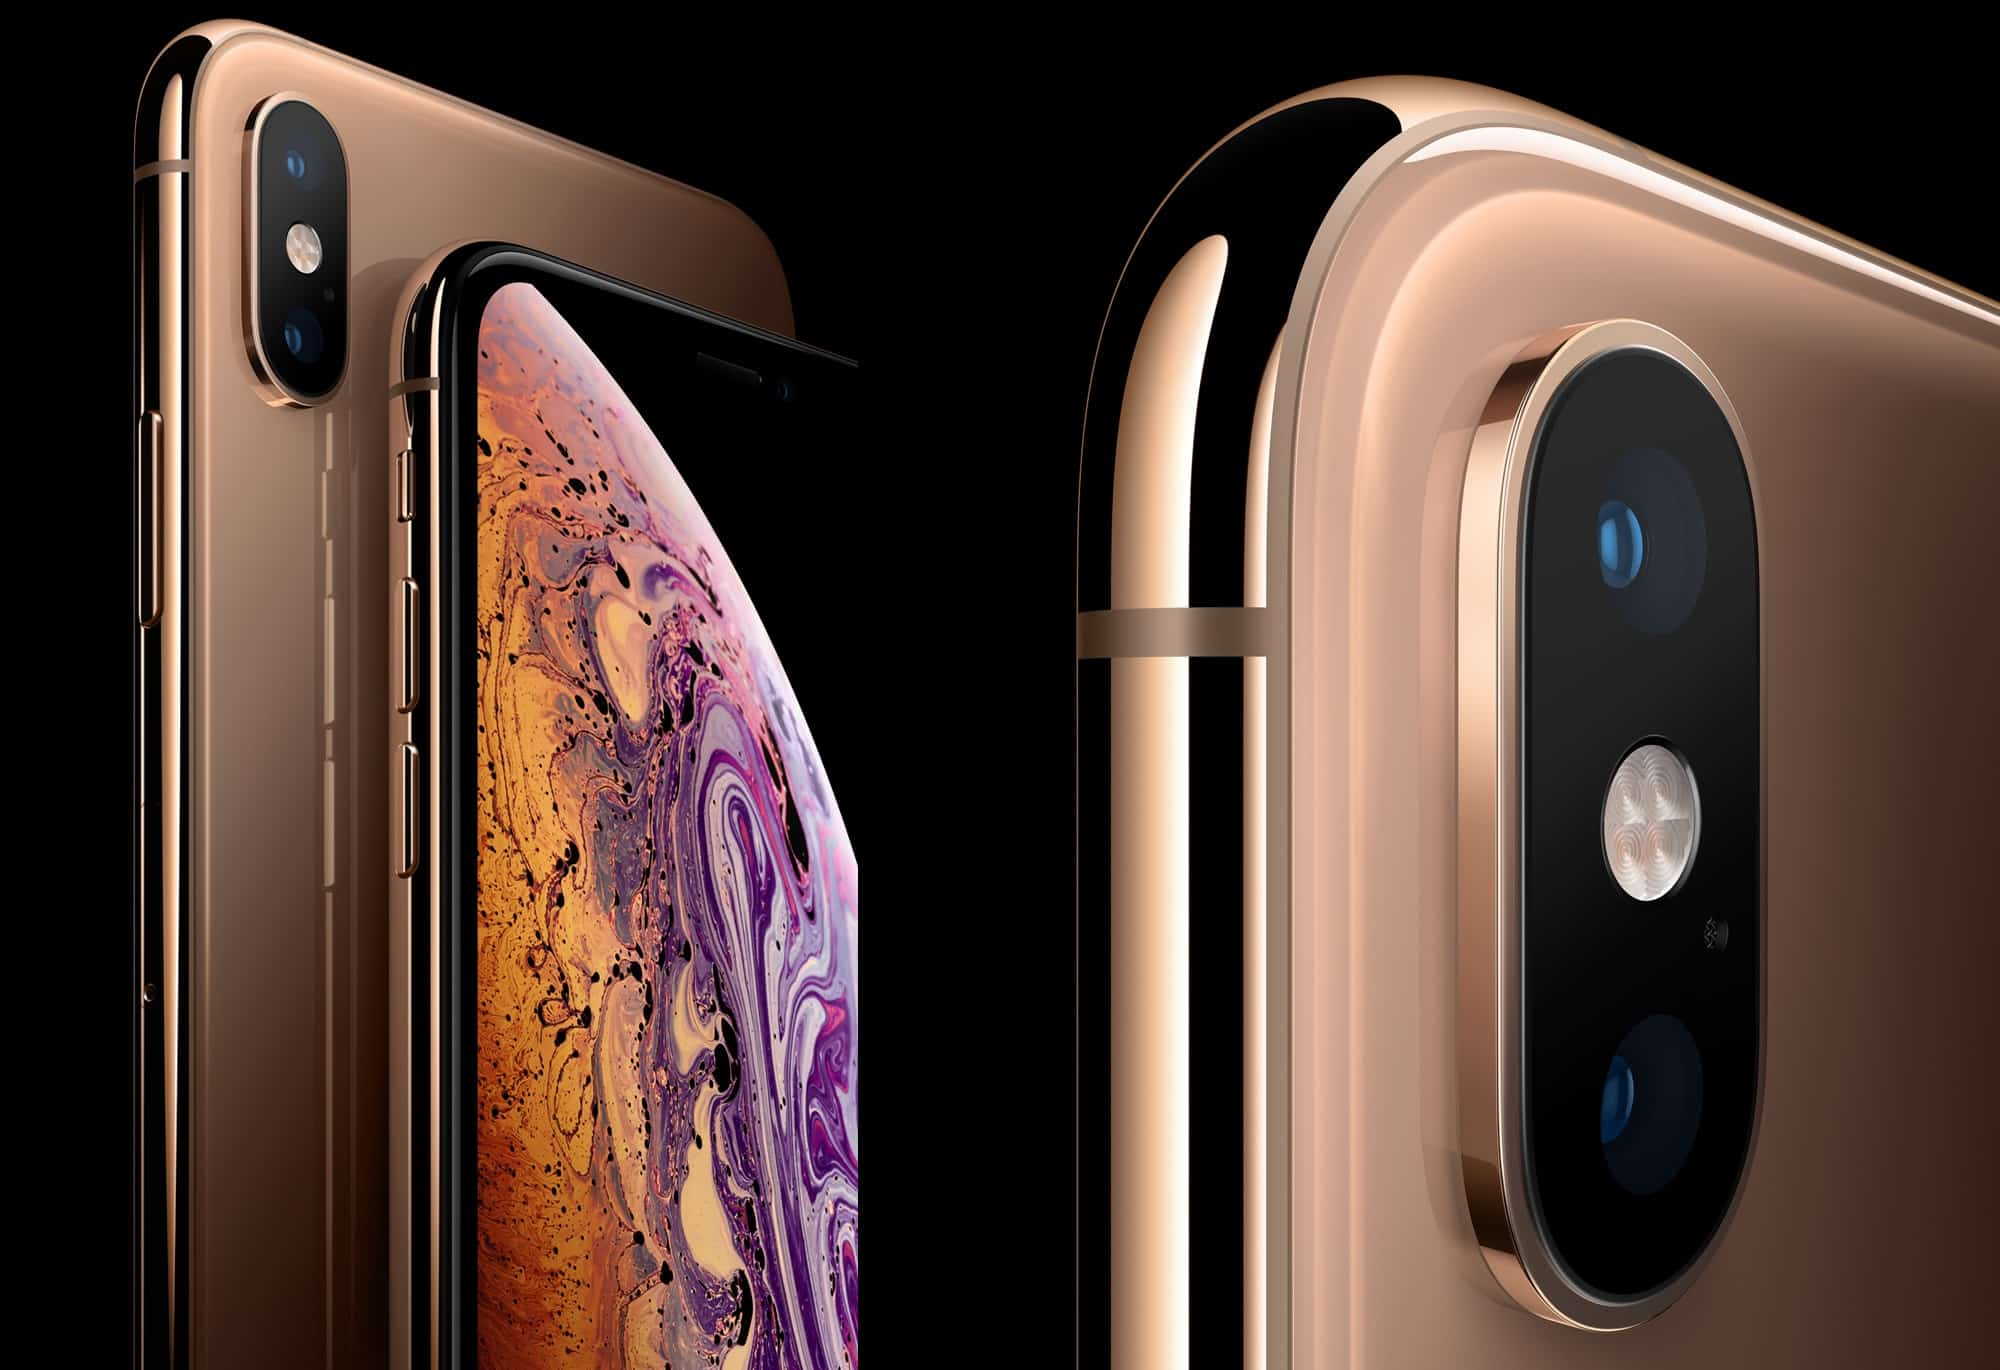 The new iPhones X go on sale tomorrow. Are you ready?